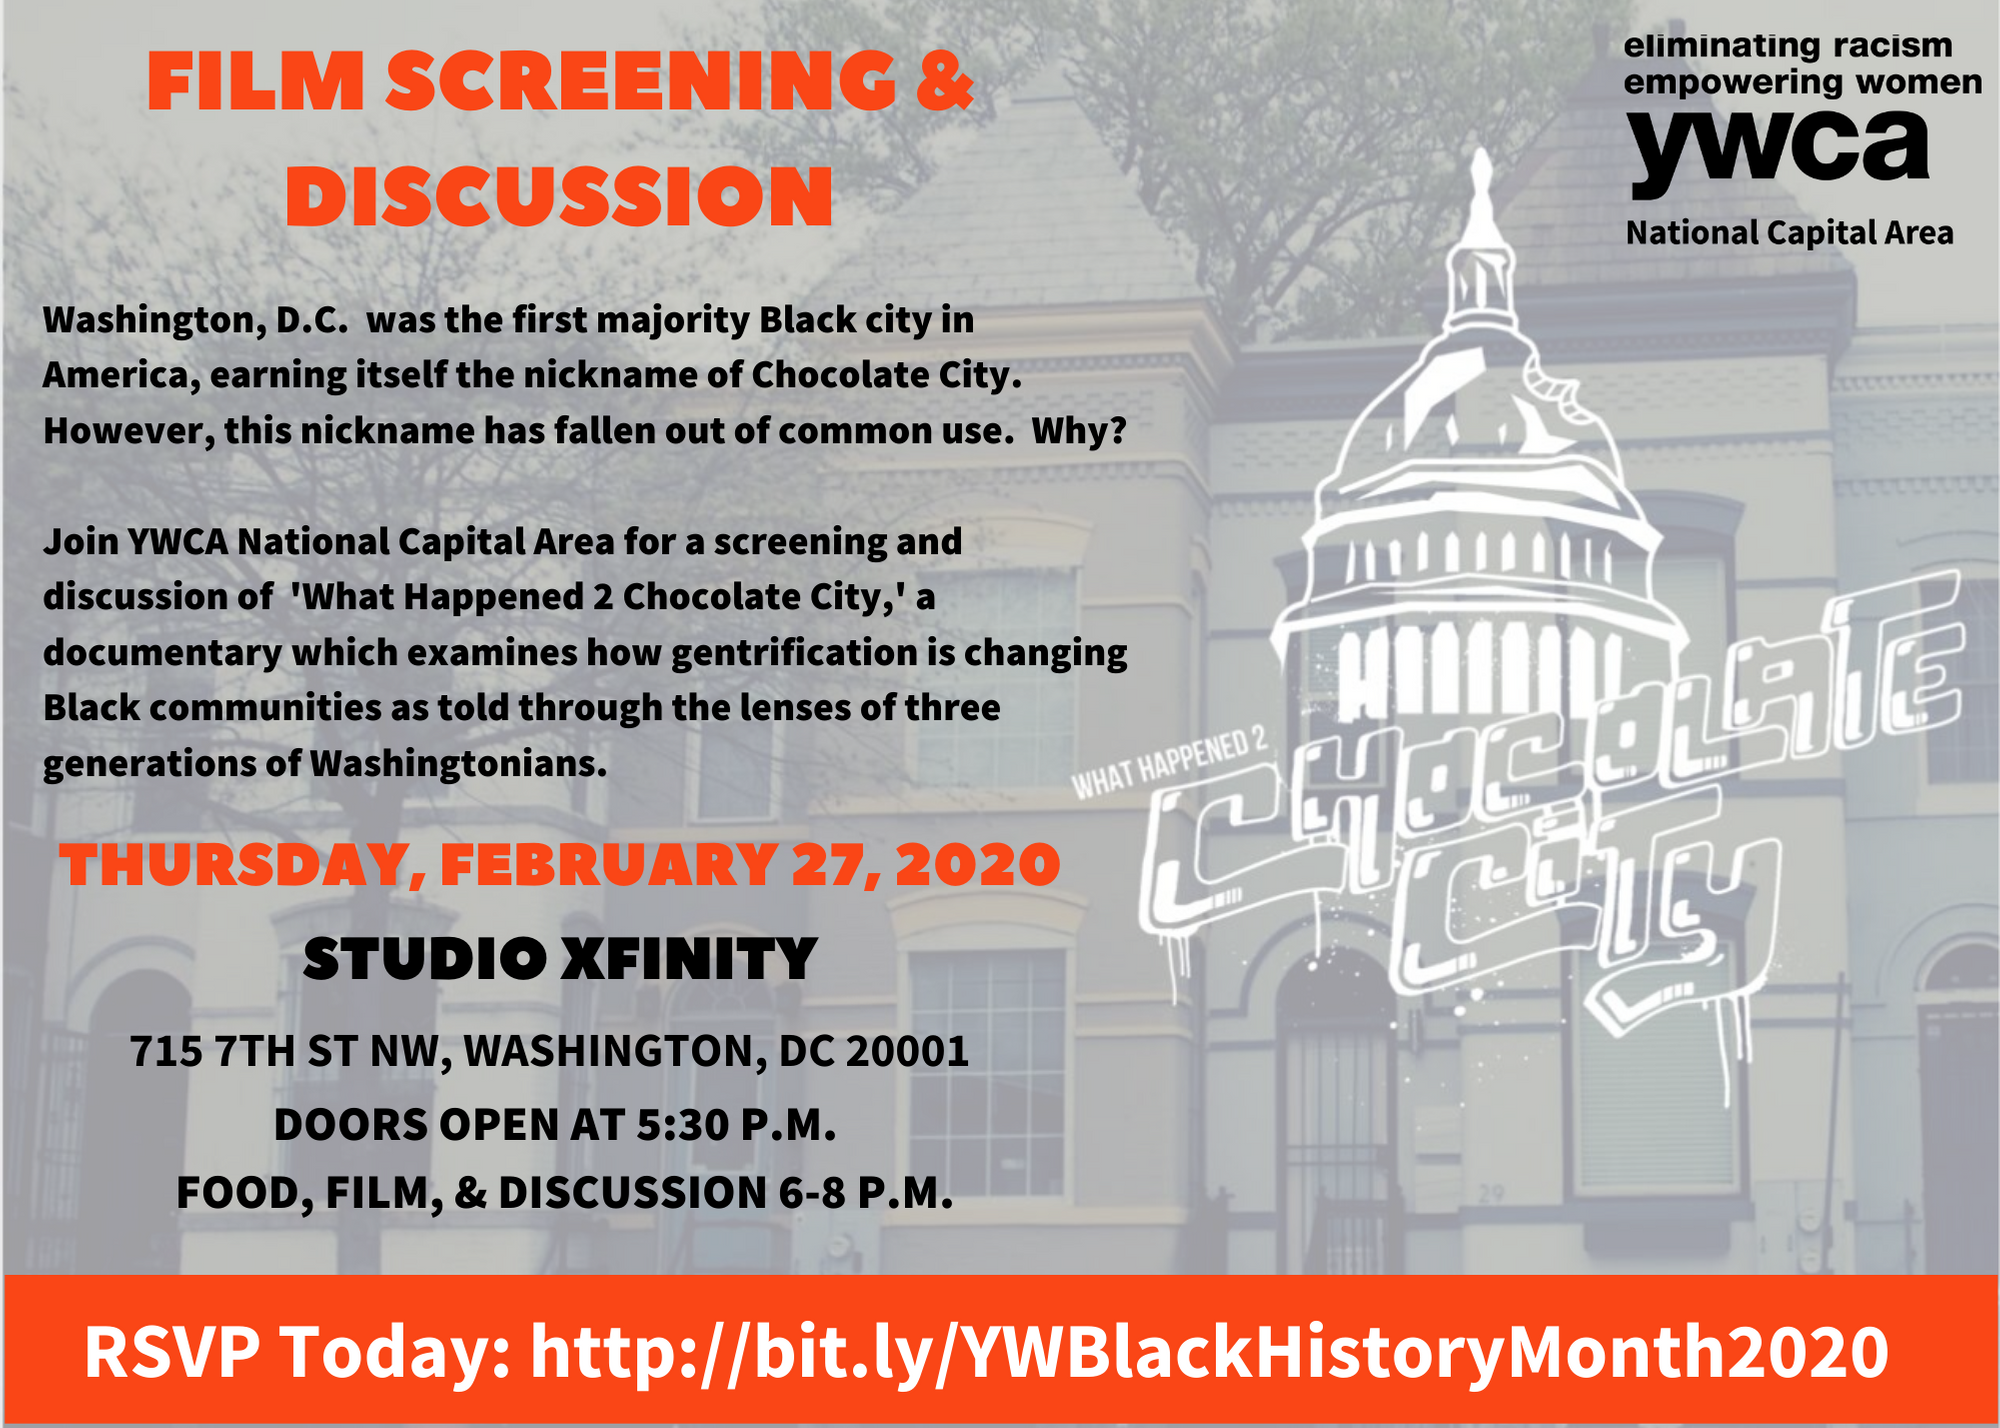 Black History Month Film Screening & Discussion @ XFINITY Store